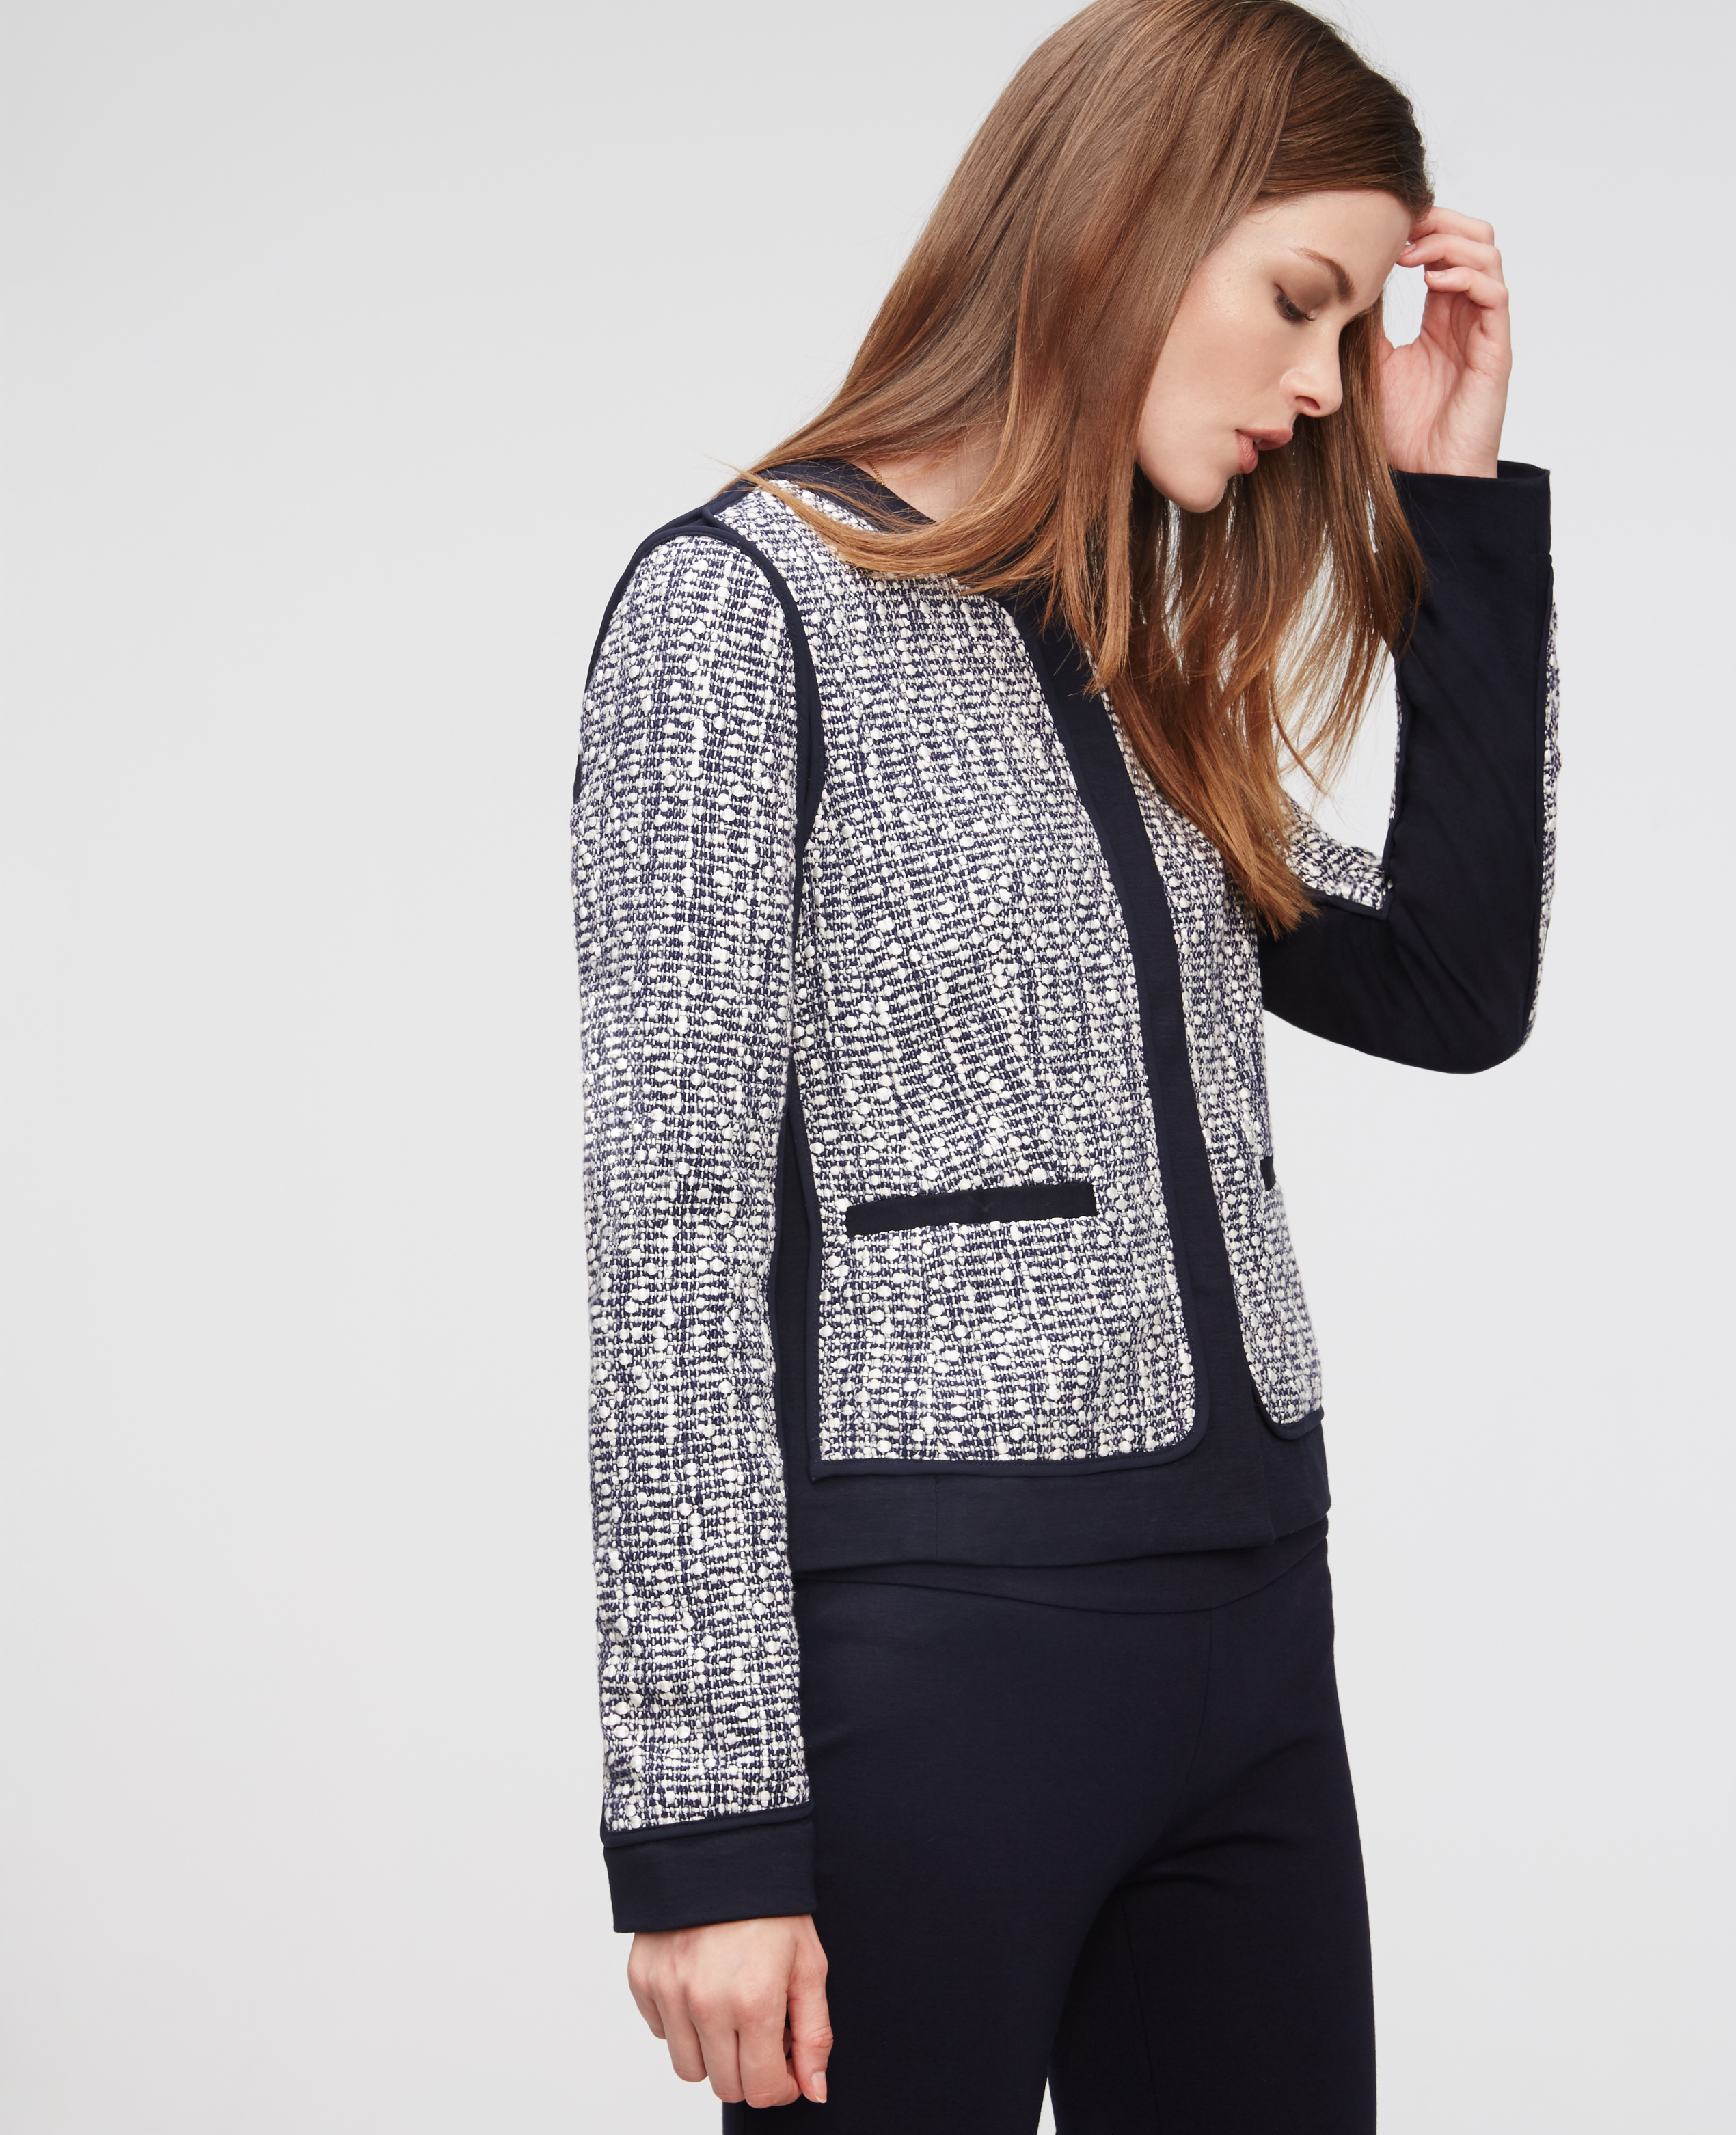 Ann taylor Petite Tweed Piped Jacket in Blue | Lyst